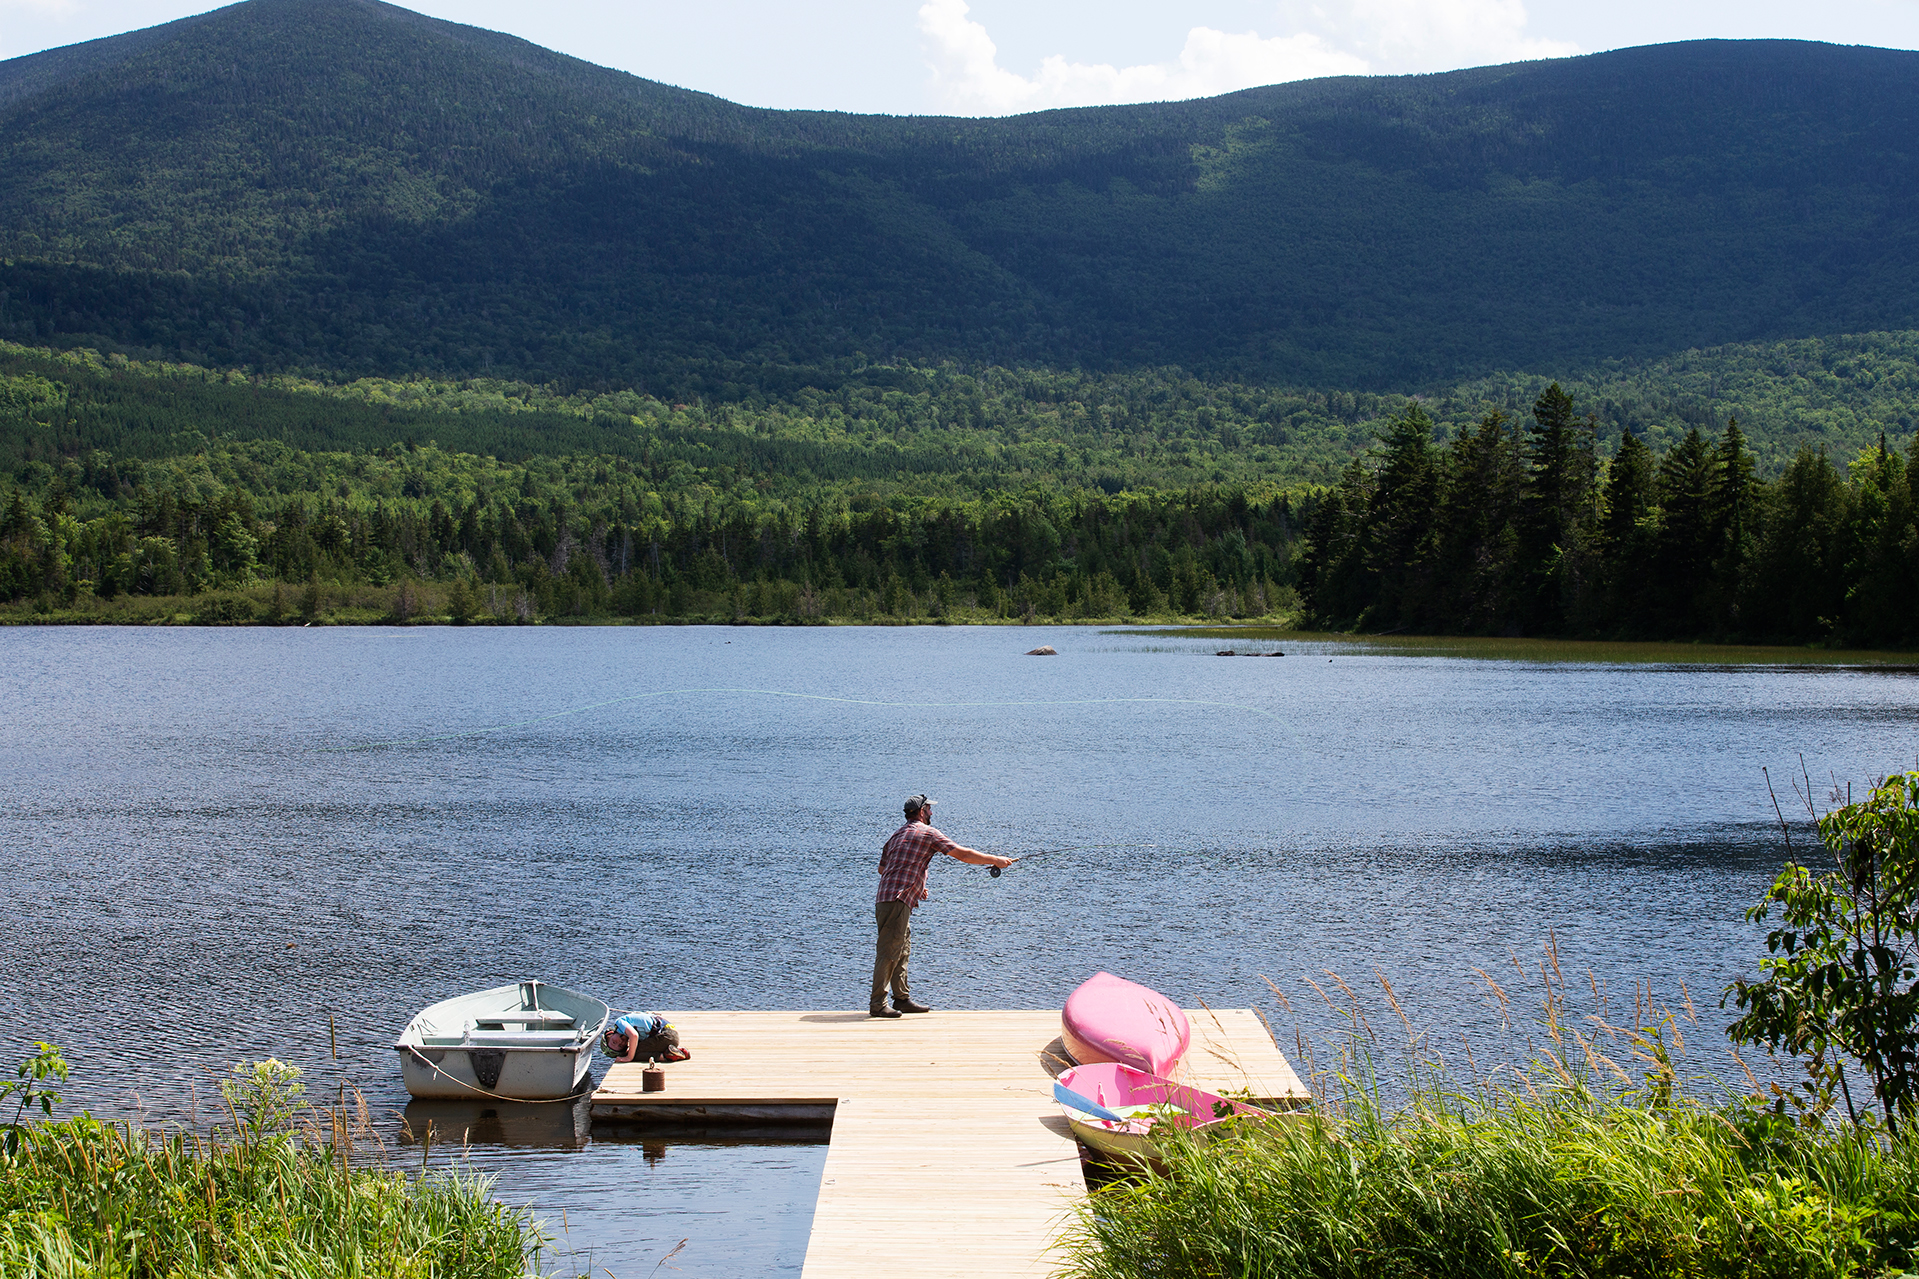 With White Cap Mountain impressive in the distance, Eric Stirling '97 casts from the dock at West Branch Pond Camps in early August. (Theophil Syslo/Bates College)